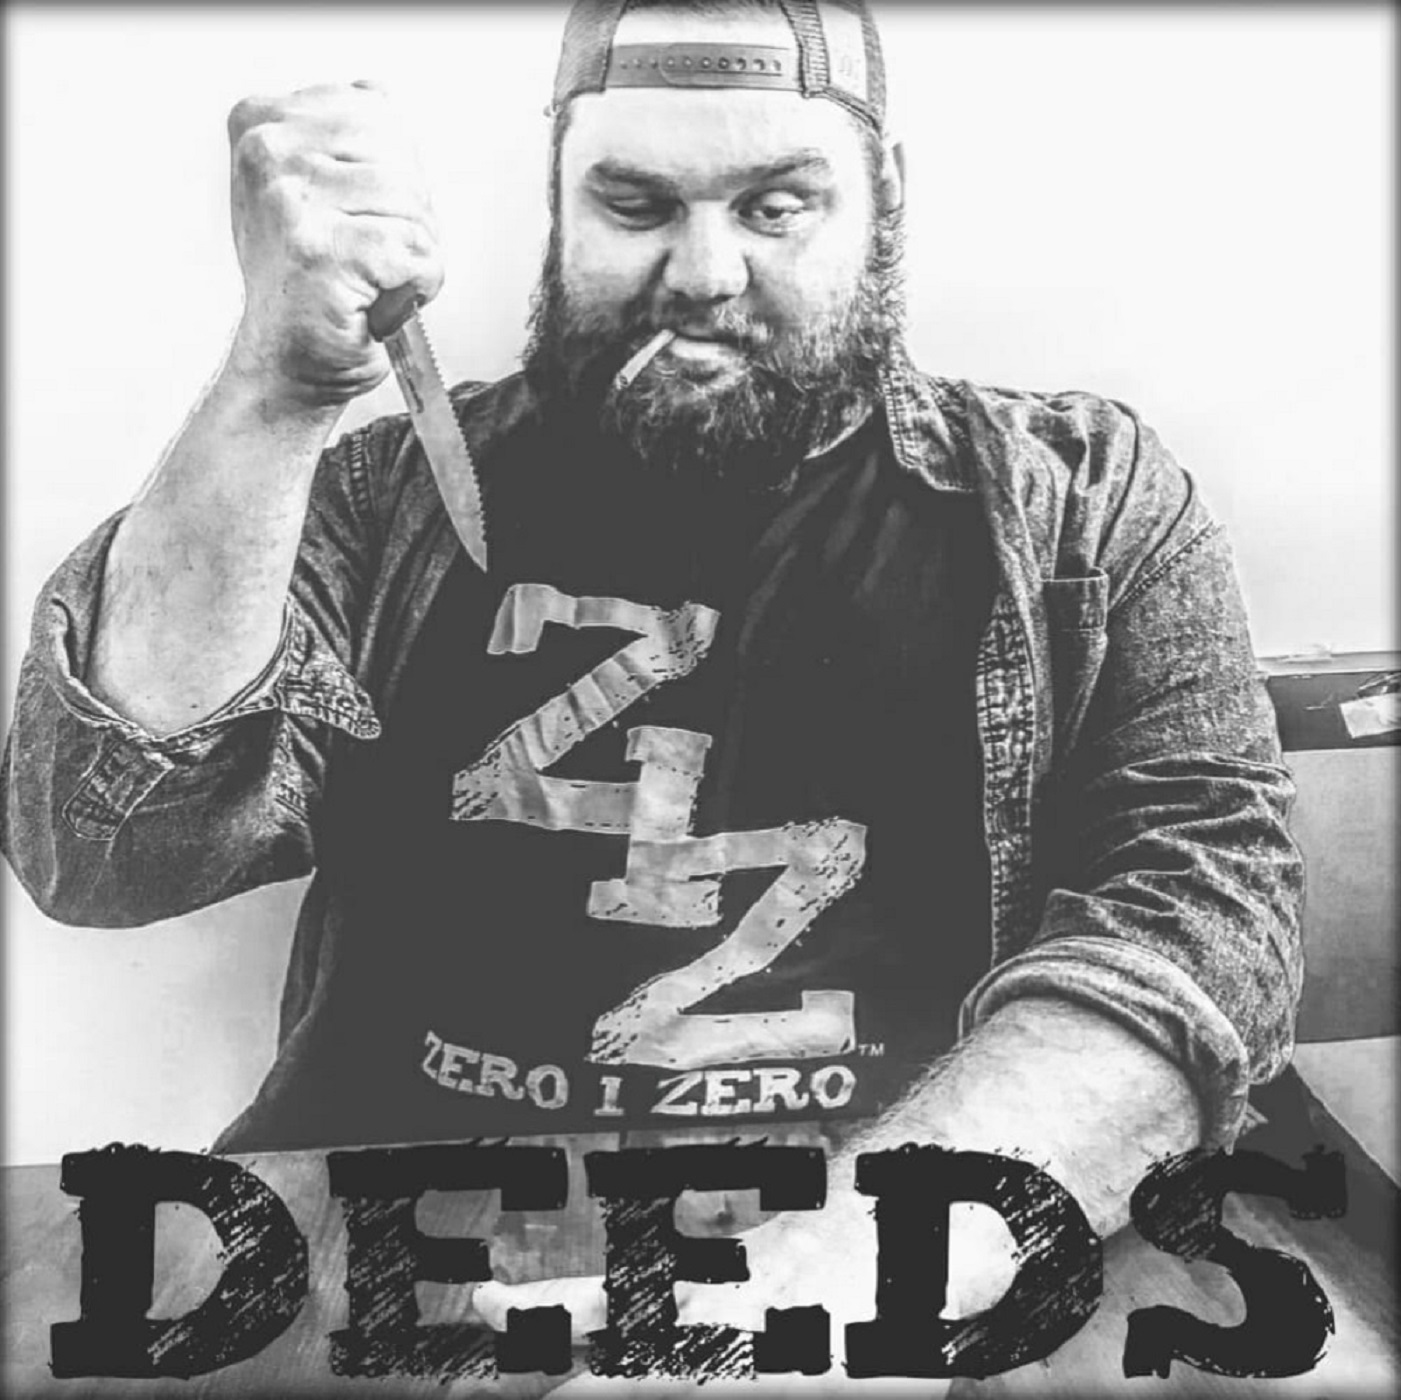 Deeds (2018) - Image Karl Winkel(Subscribe to access the full E.P.)